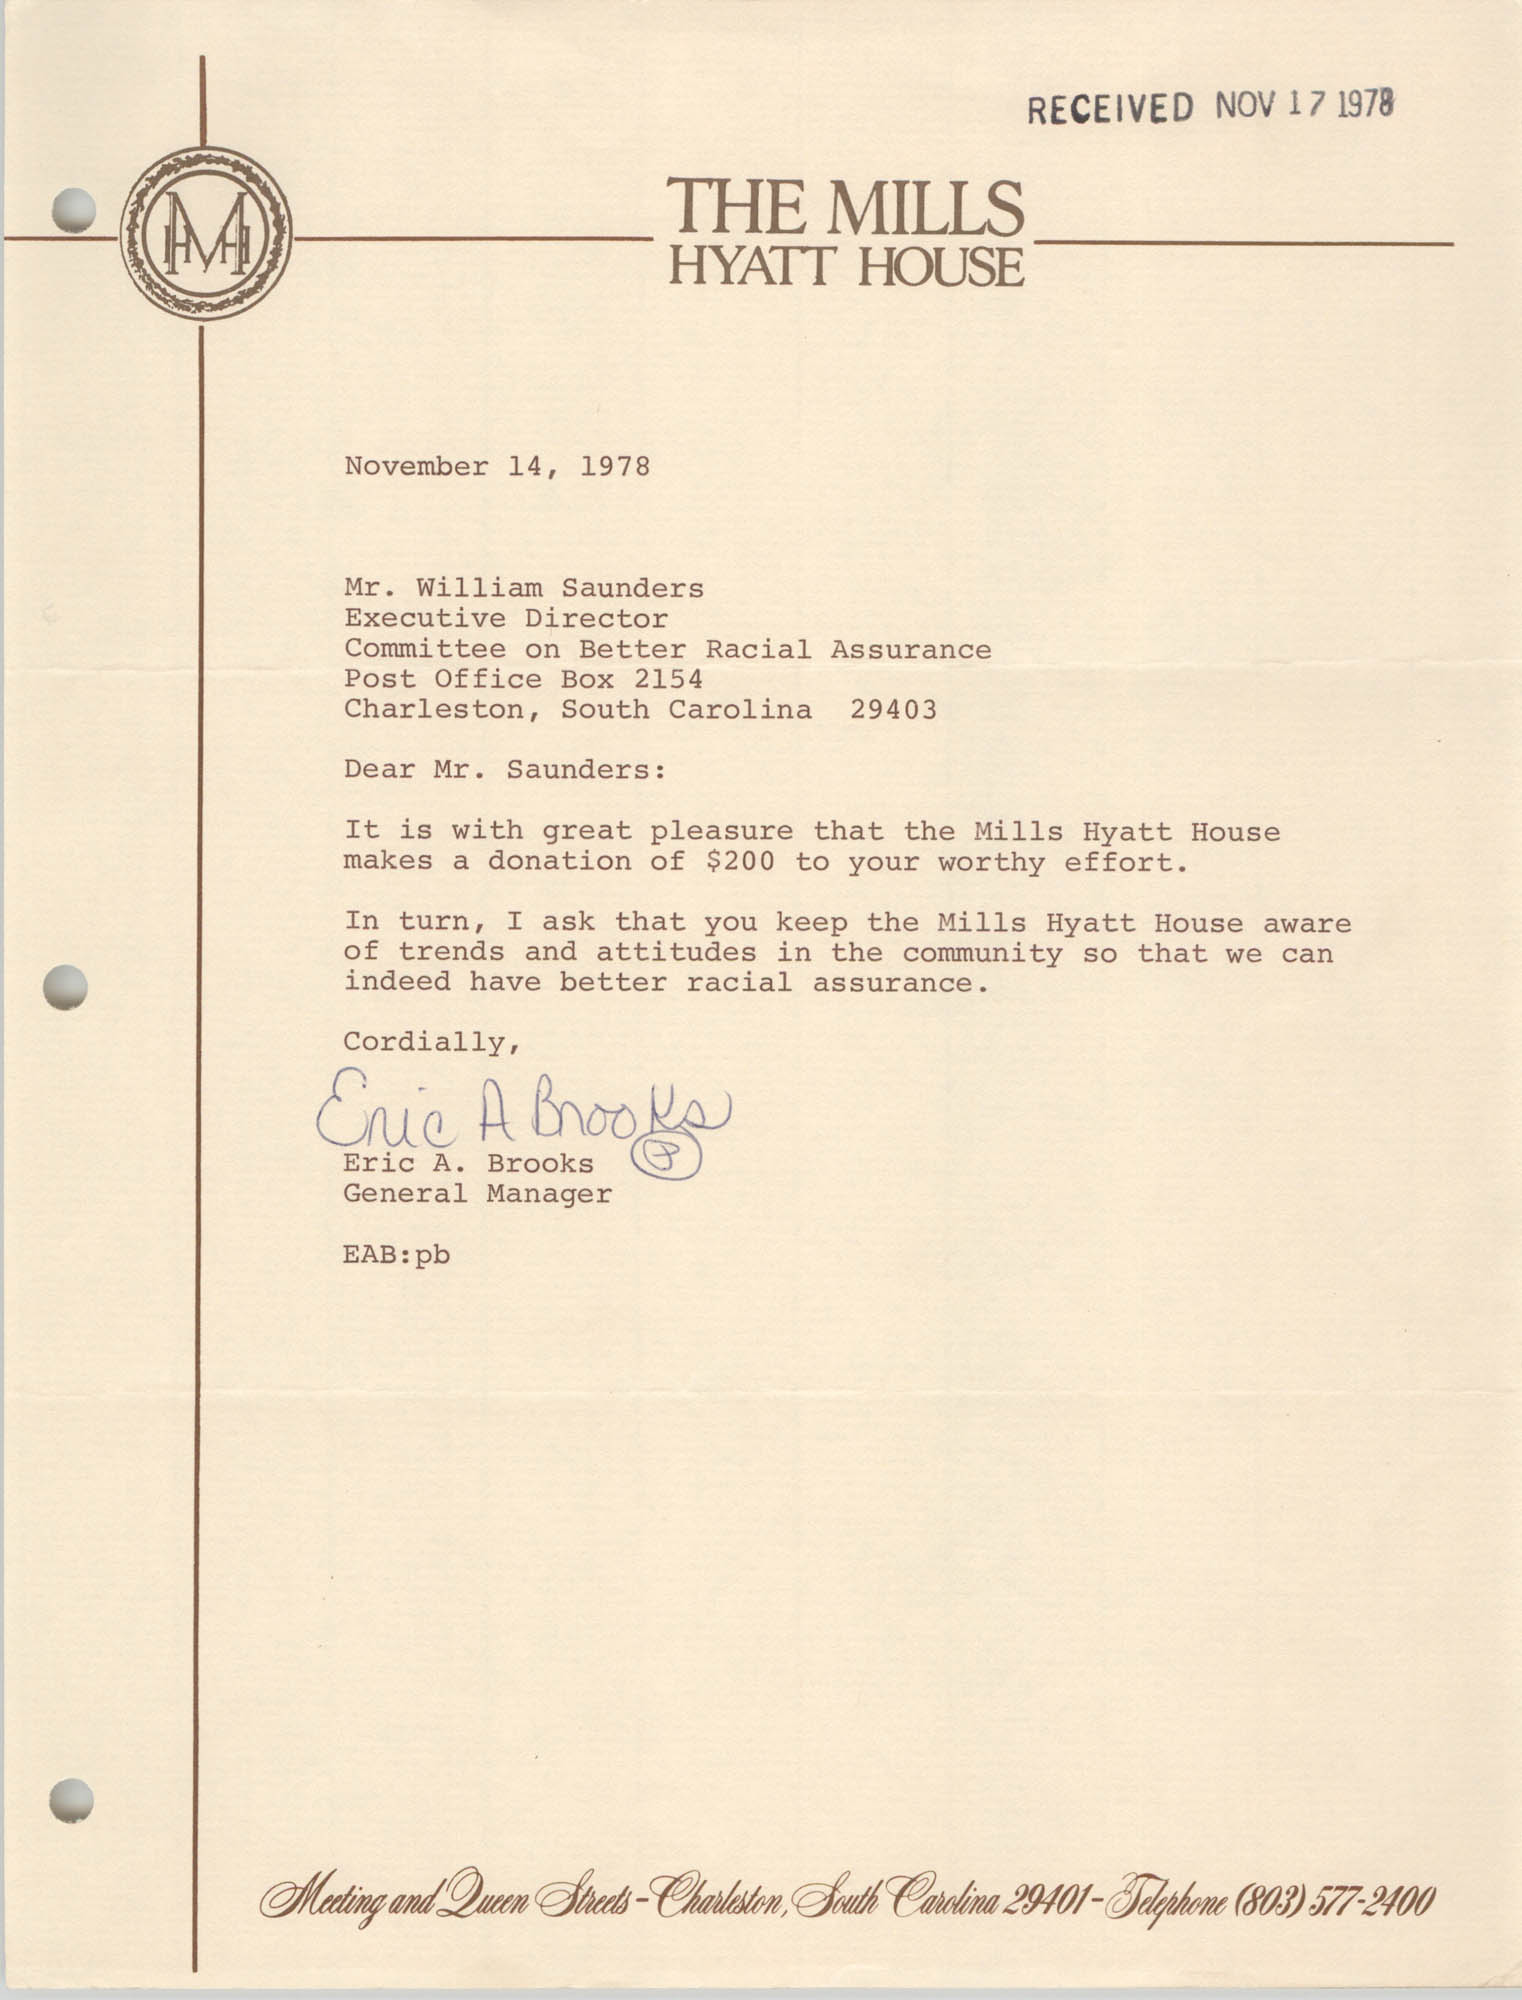 Letter from Eric A. Brooks to William Saunders, November 14, 1978